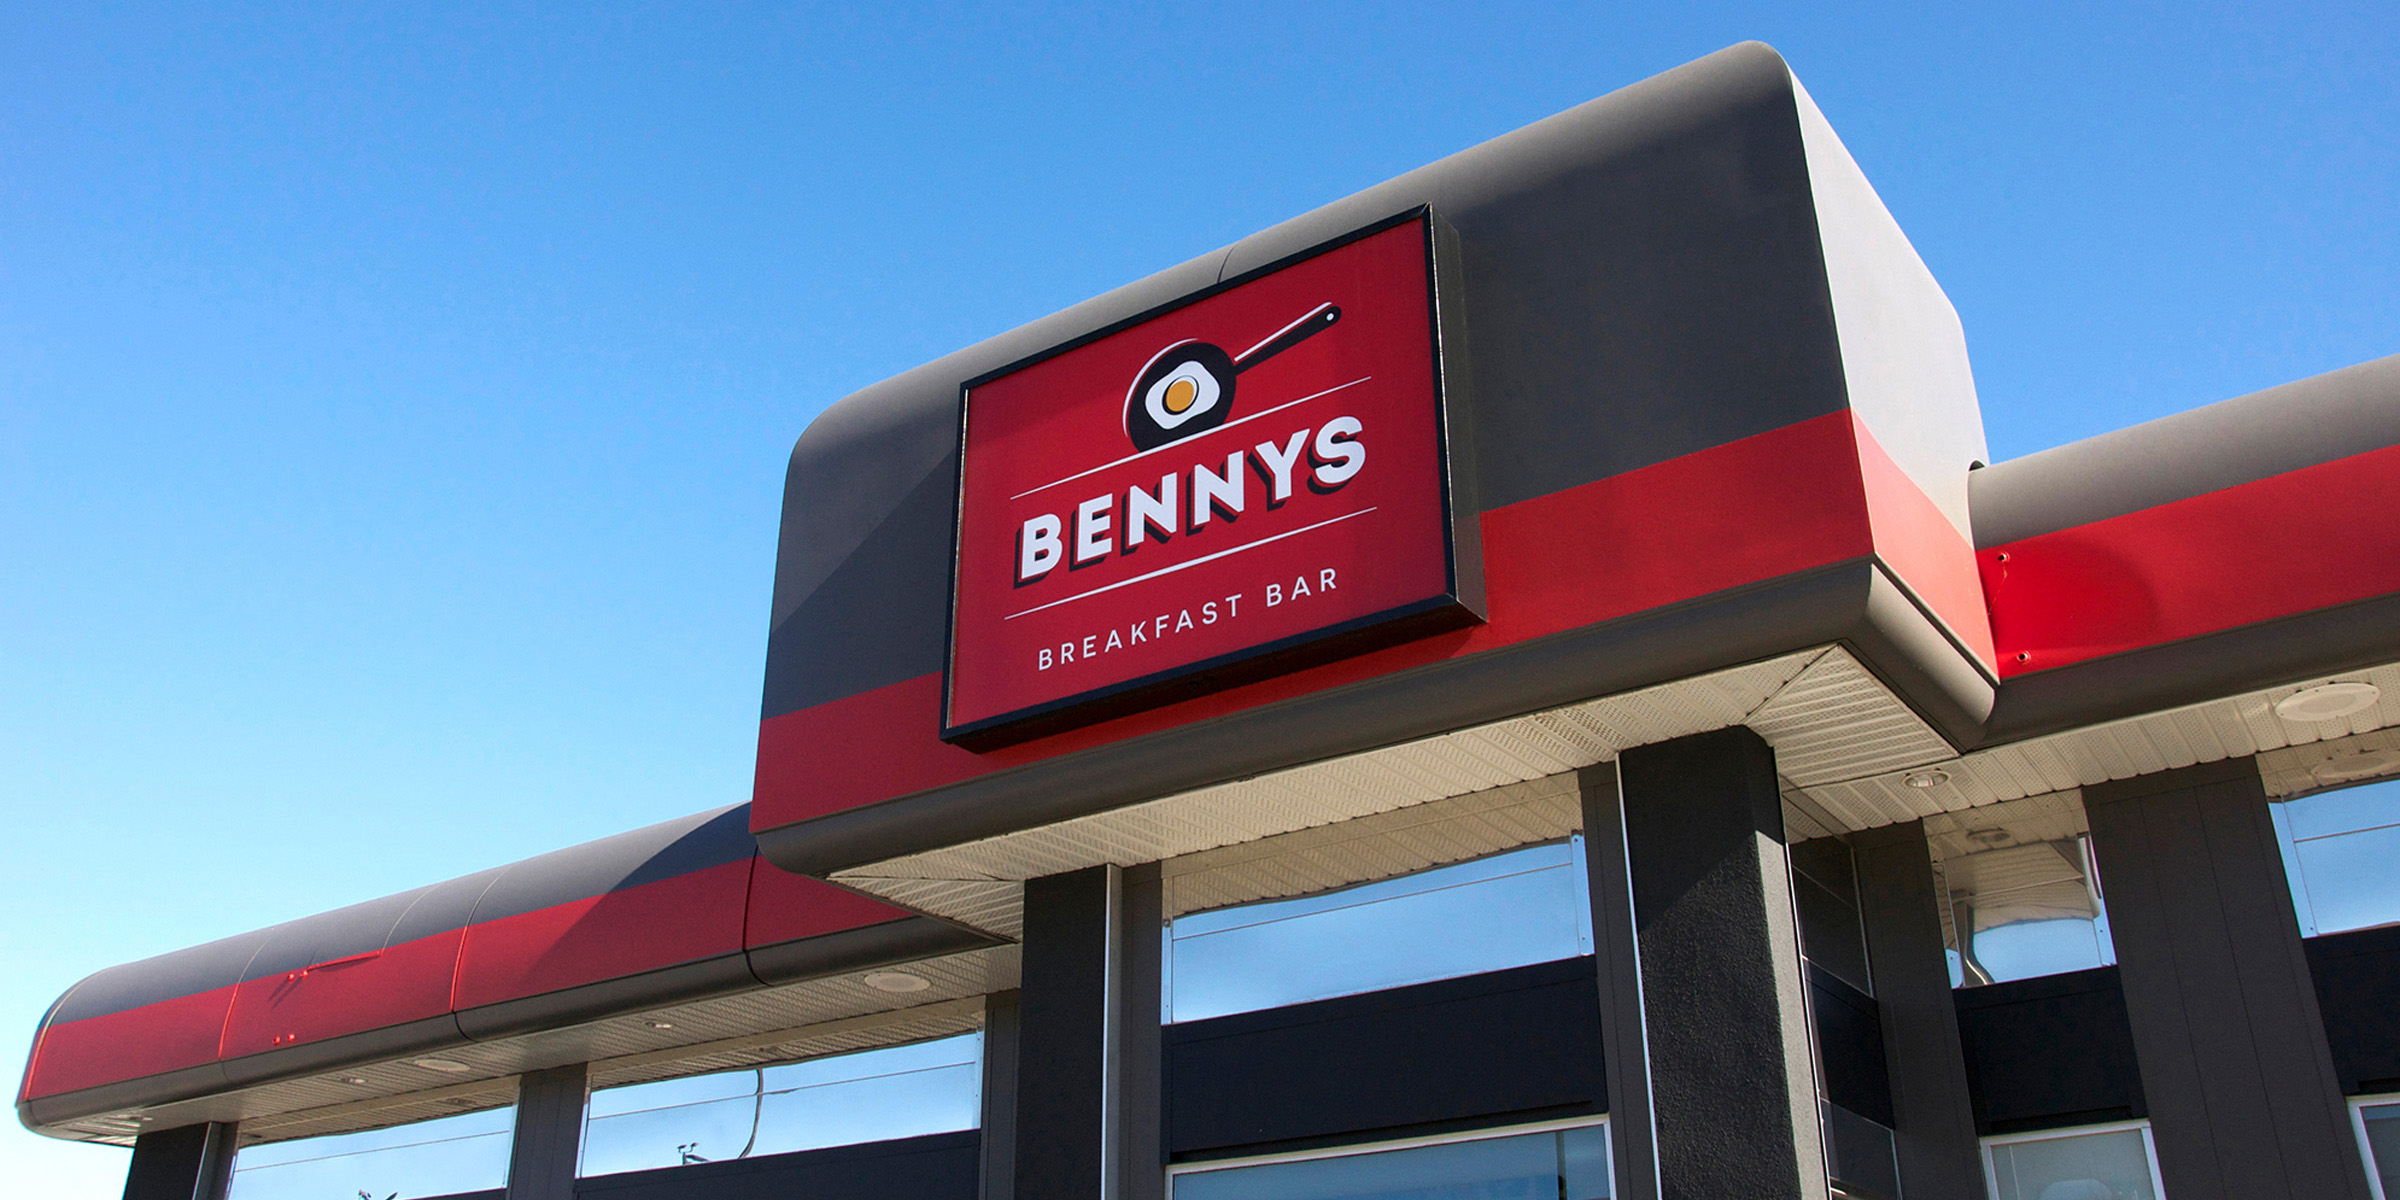 Bennys sign on exterior of the building